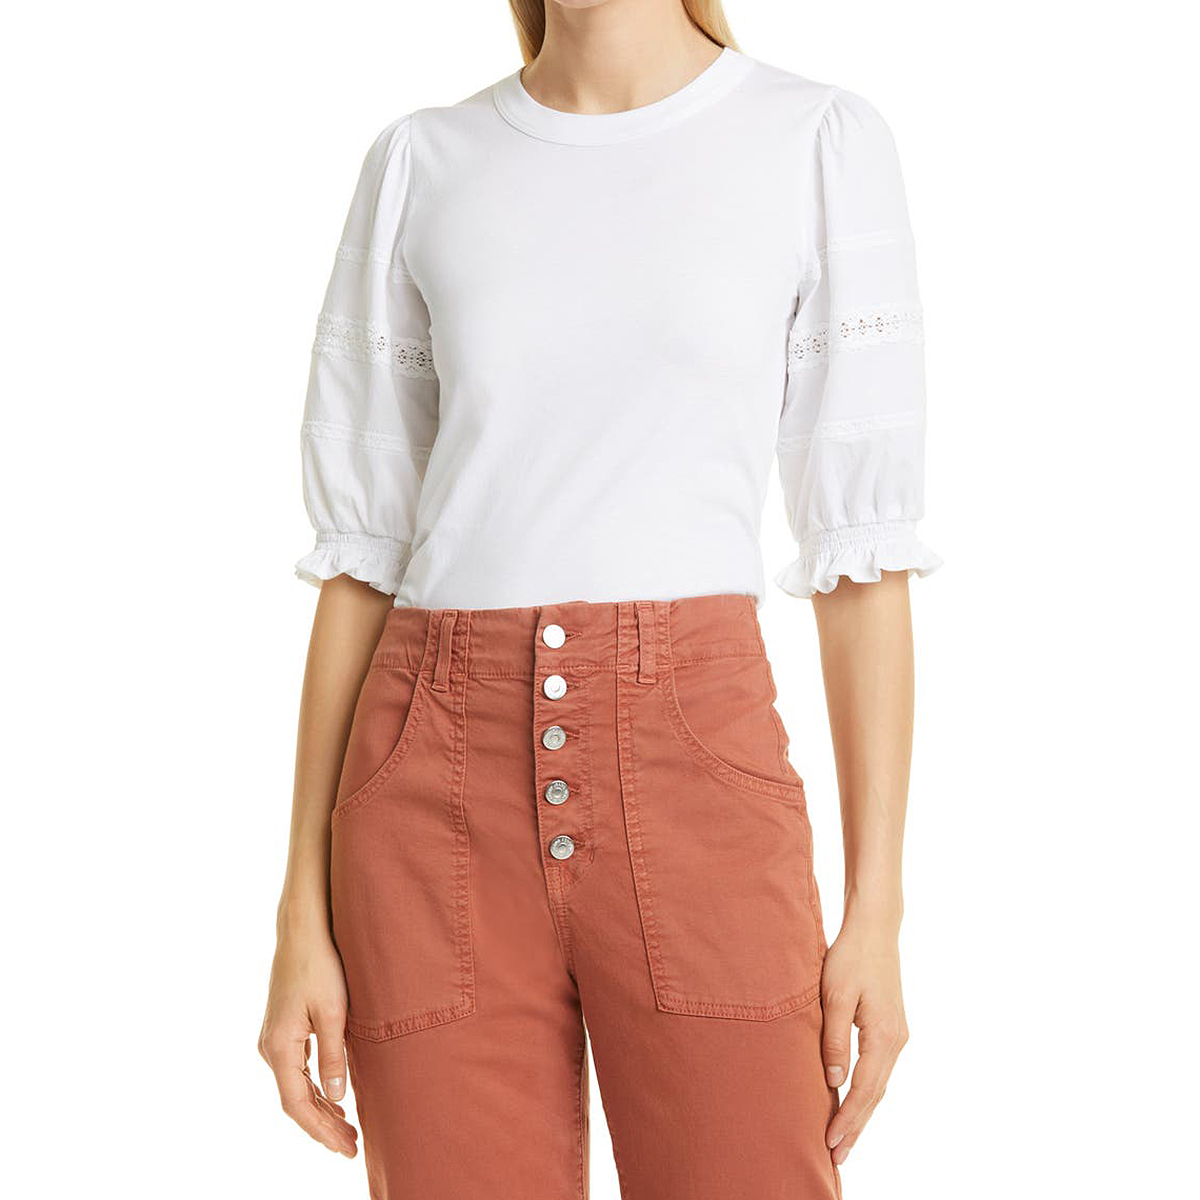 nordstrom-sale-puff-sleeve-blouse